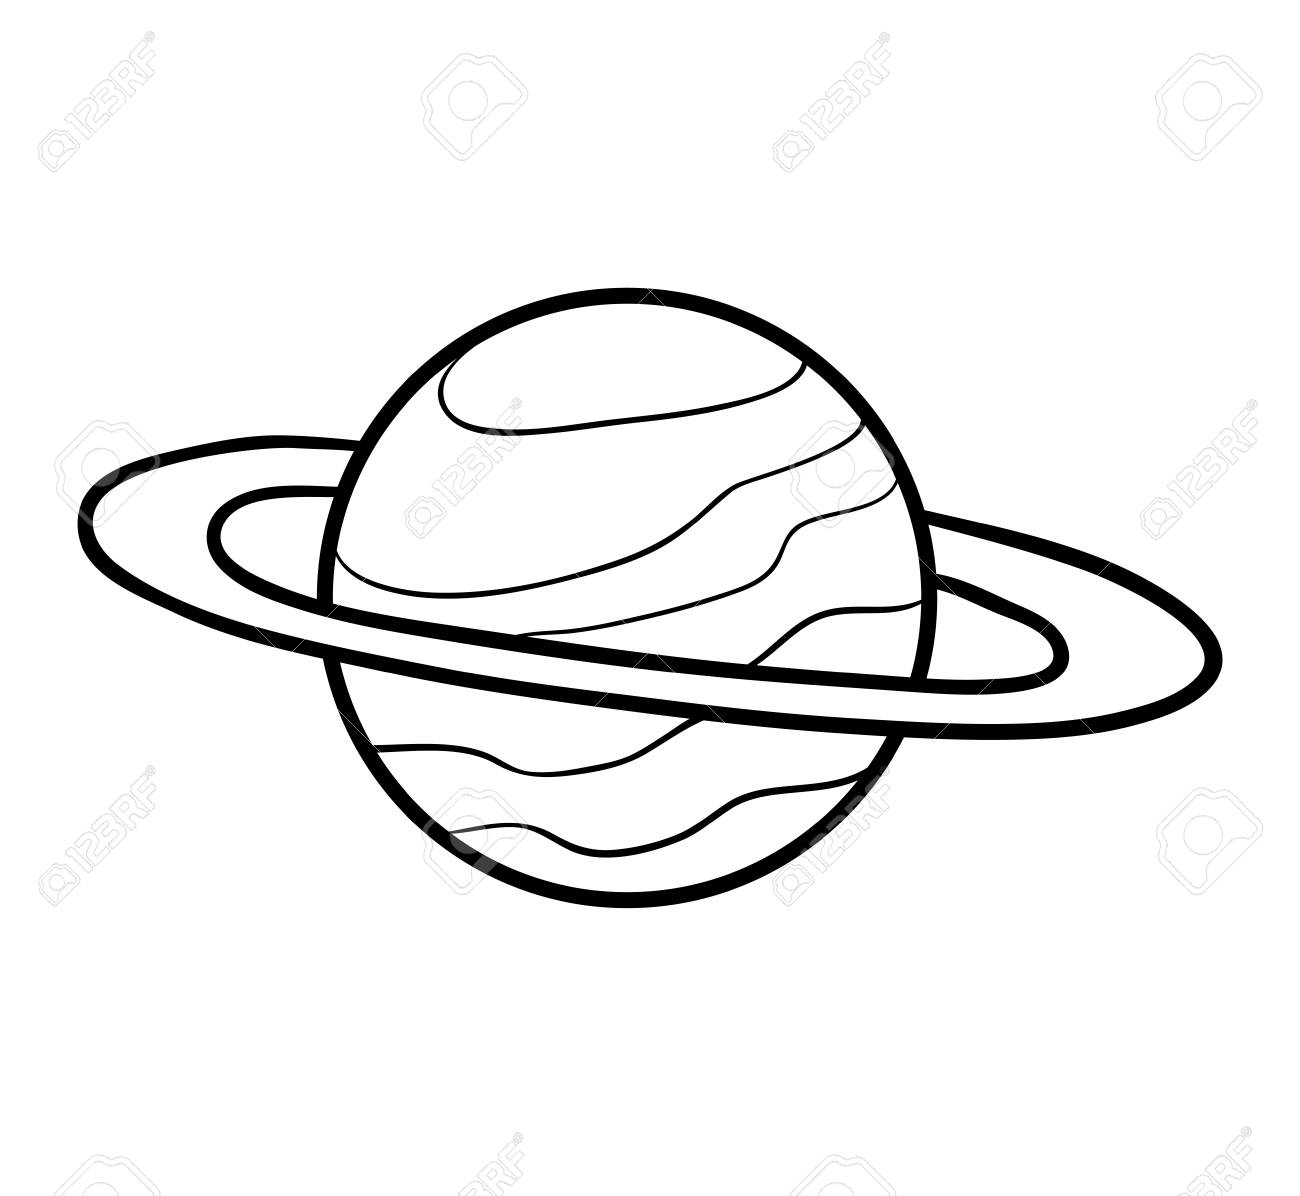 Coloring book for children saturn stock vector 79471235